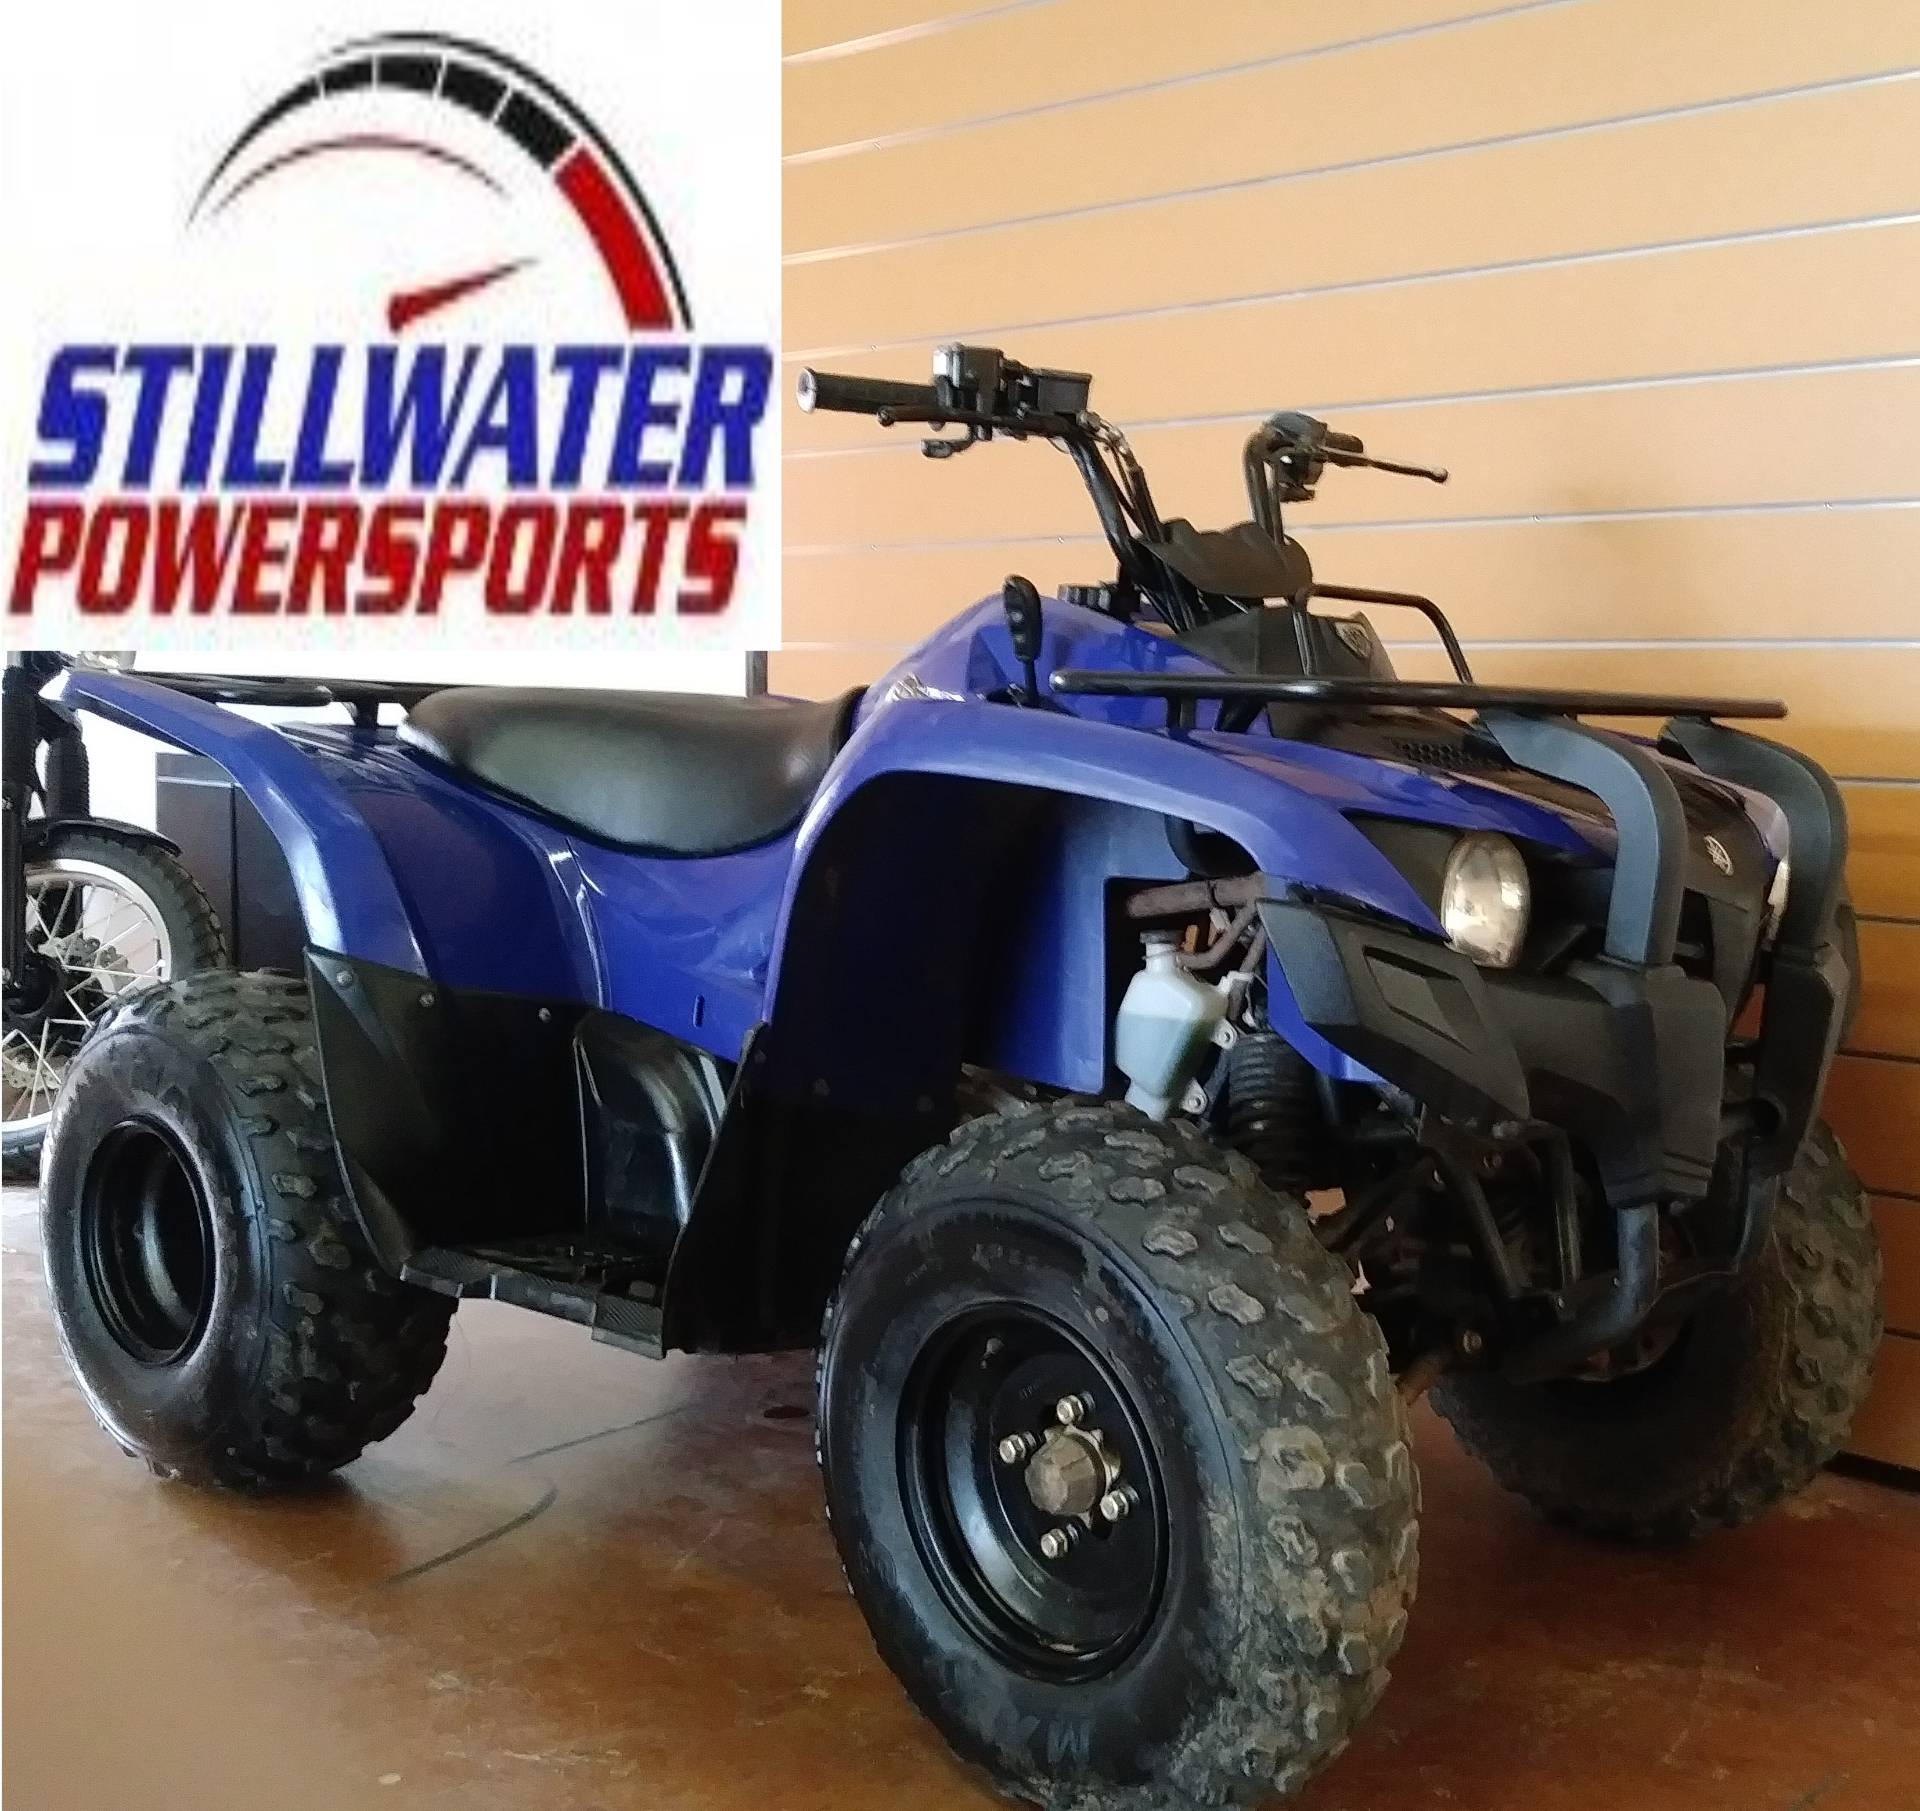 2013 Yamaha Grizzly 300 in Stillwater, Oklahoma